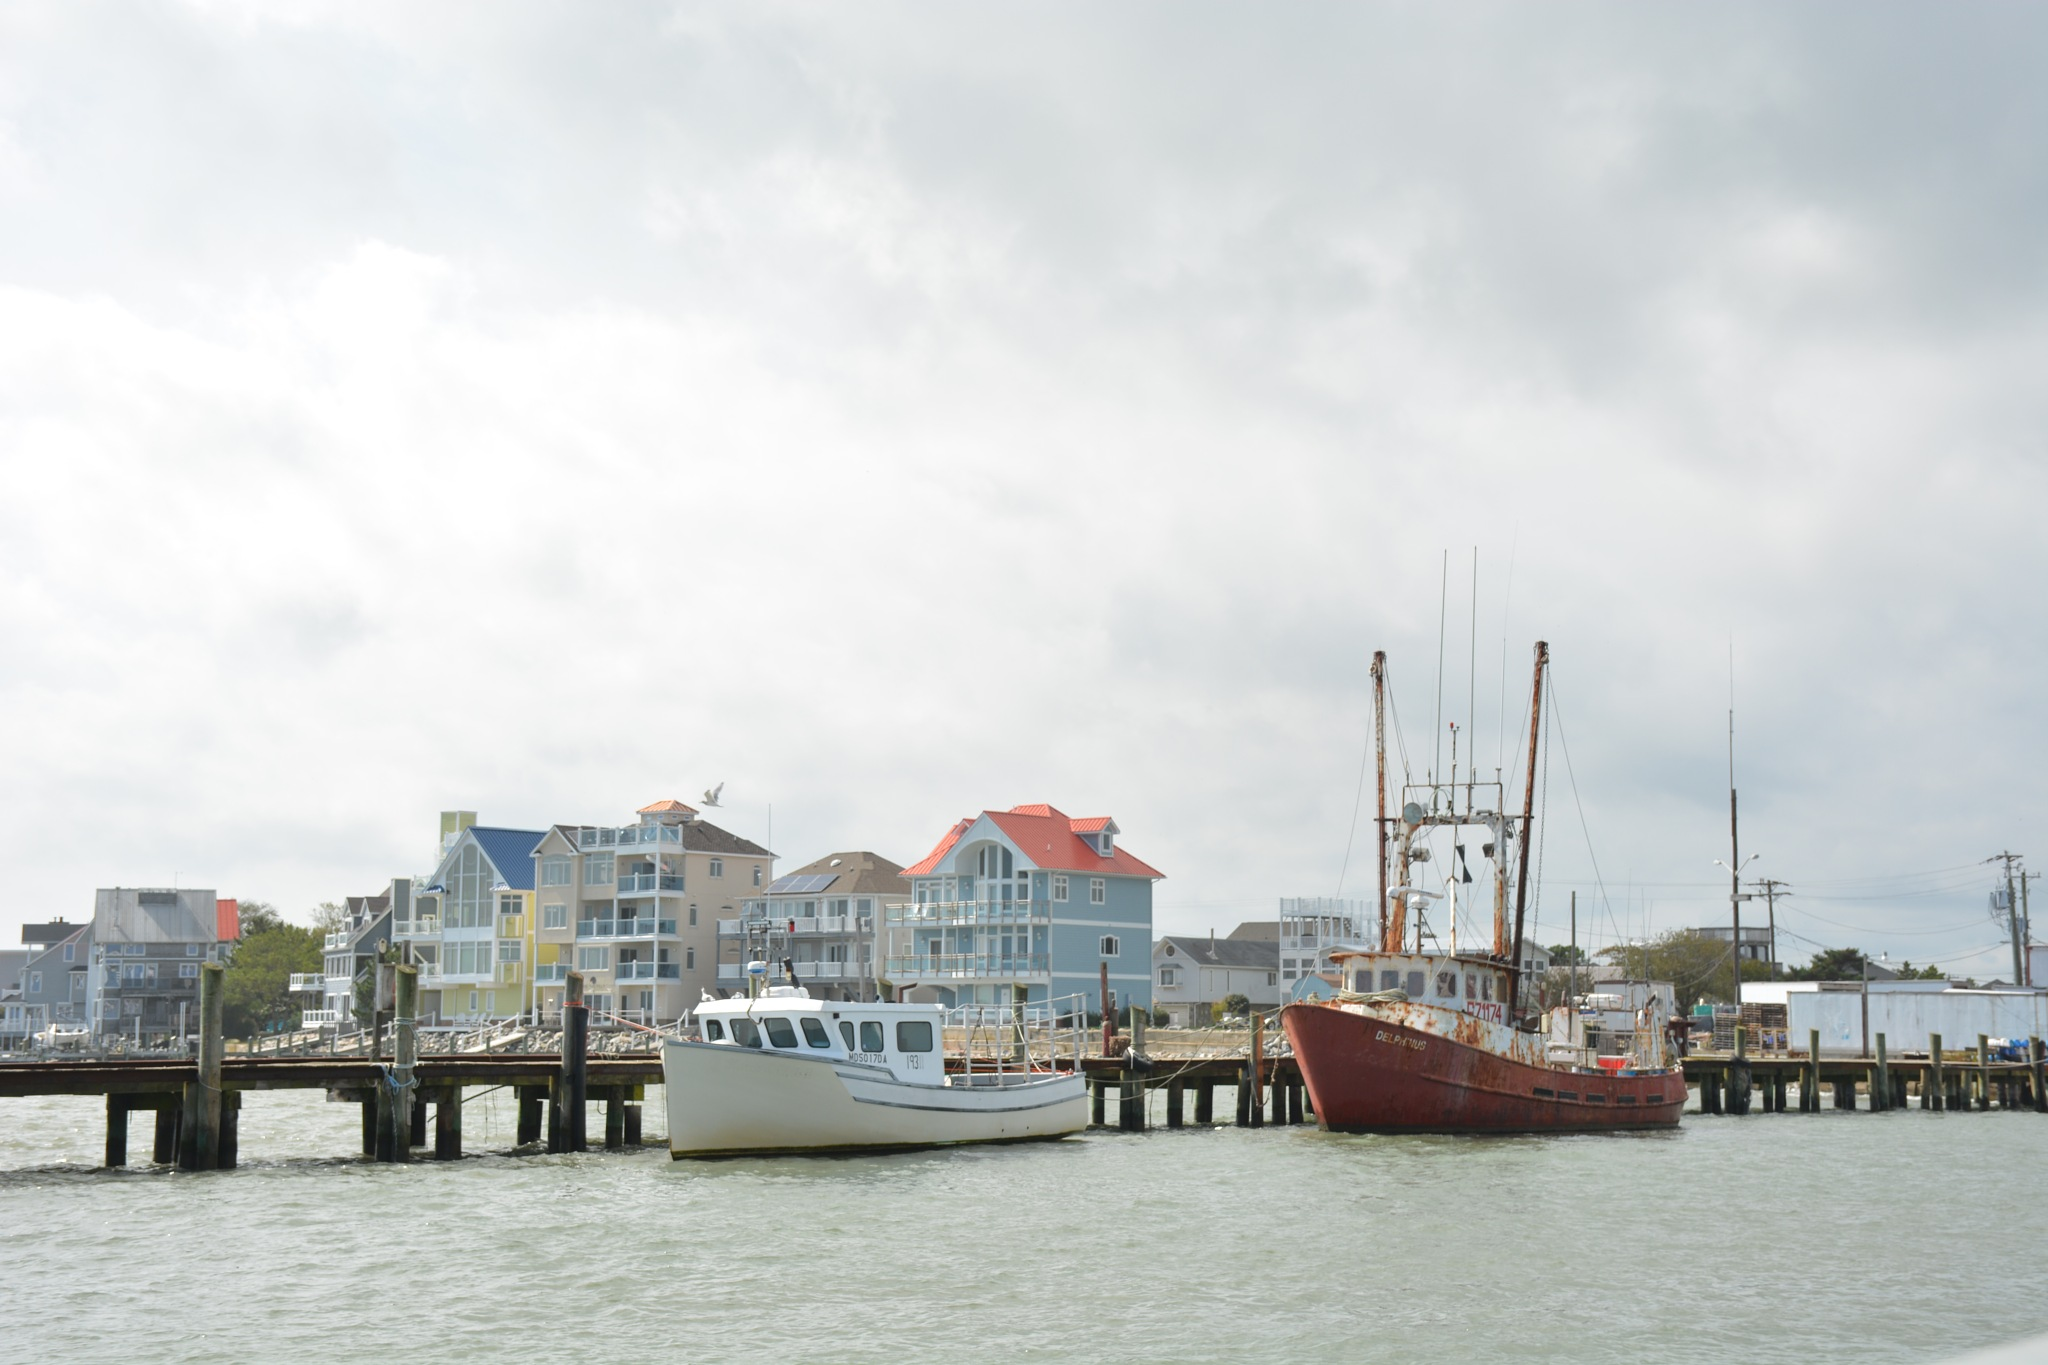 More O.C. MD Beach Homes and Big Boats by suzanne.kohr